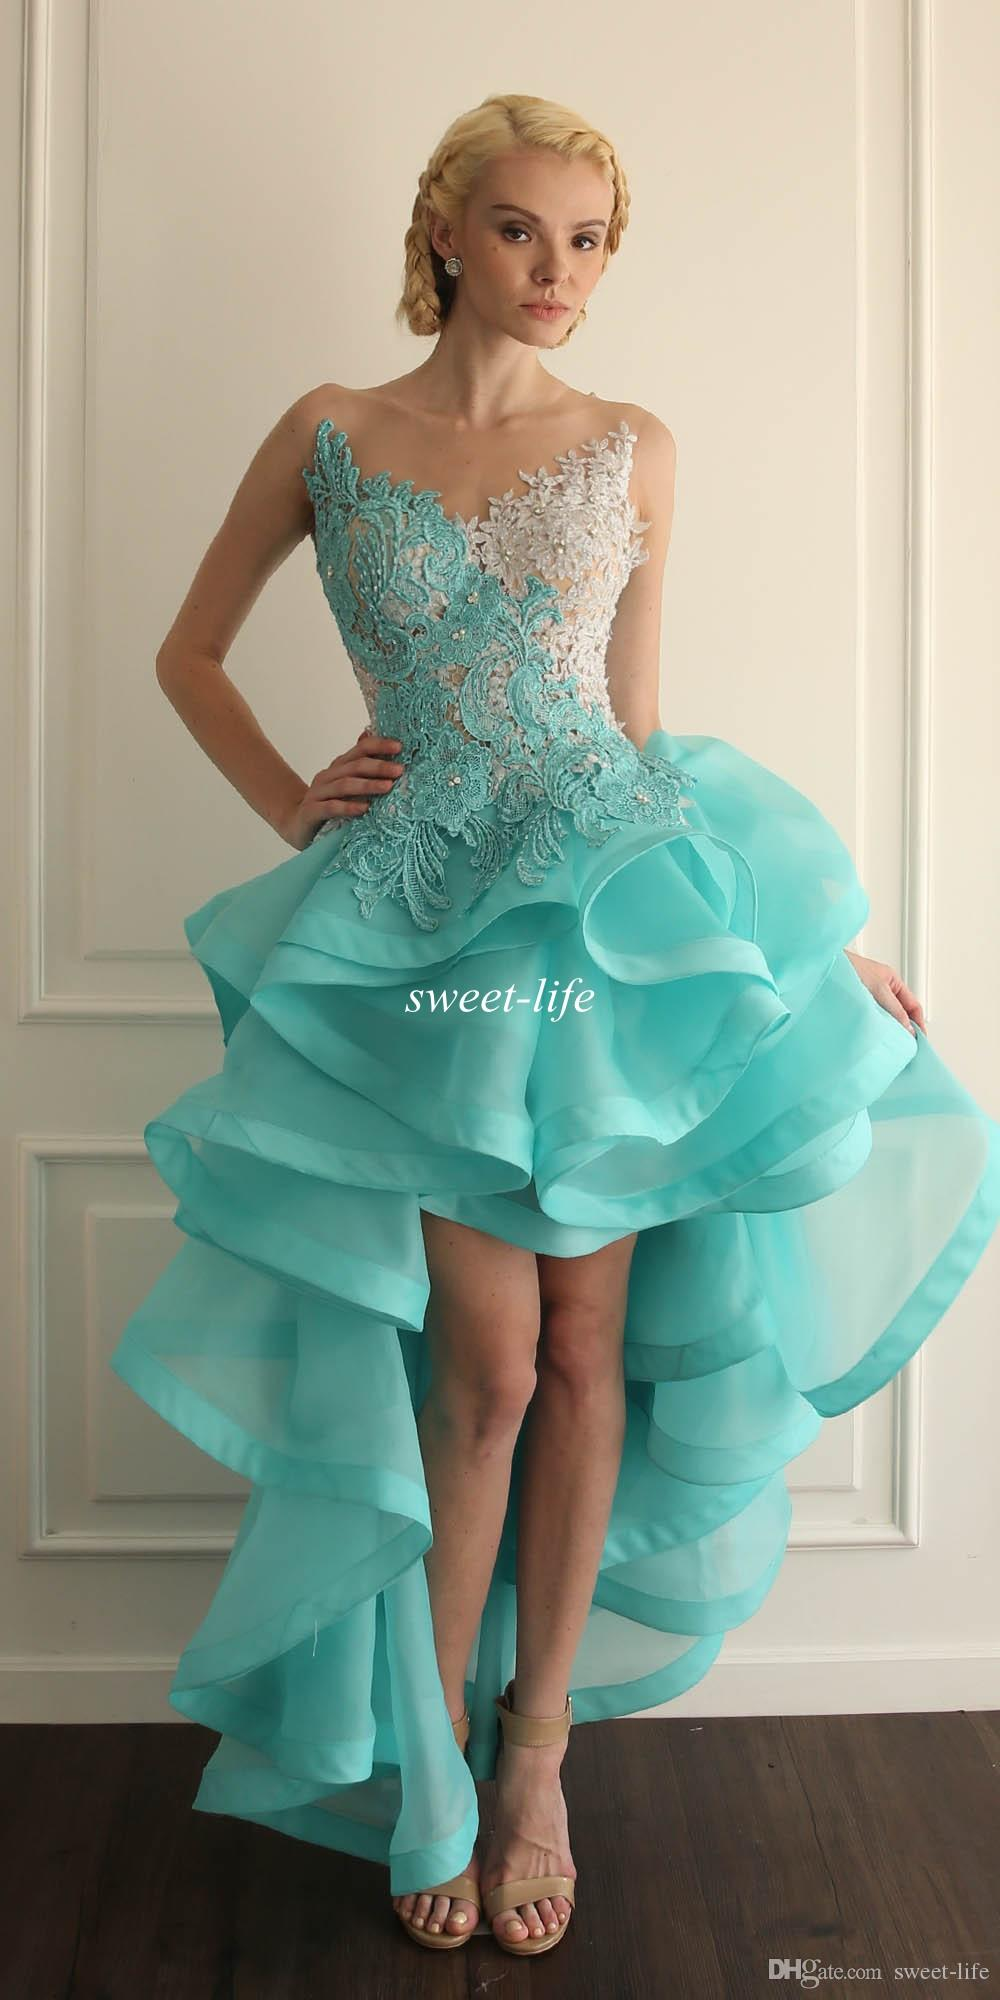 36f3ccaa9a 2015 High Low Ball Gown 8th College Homecoming Dresses Sexy Mint Green  Organza Lace Backless Short Front Long Back Cheap Party Prom Dresses